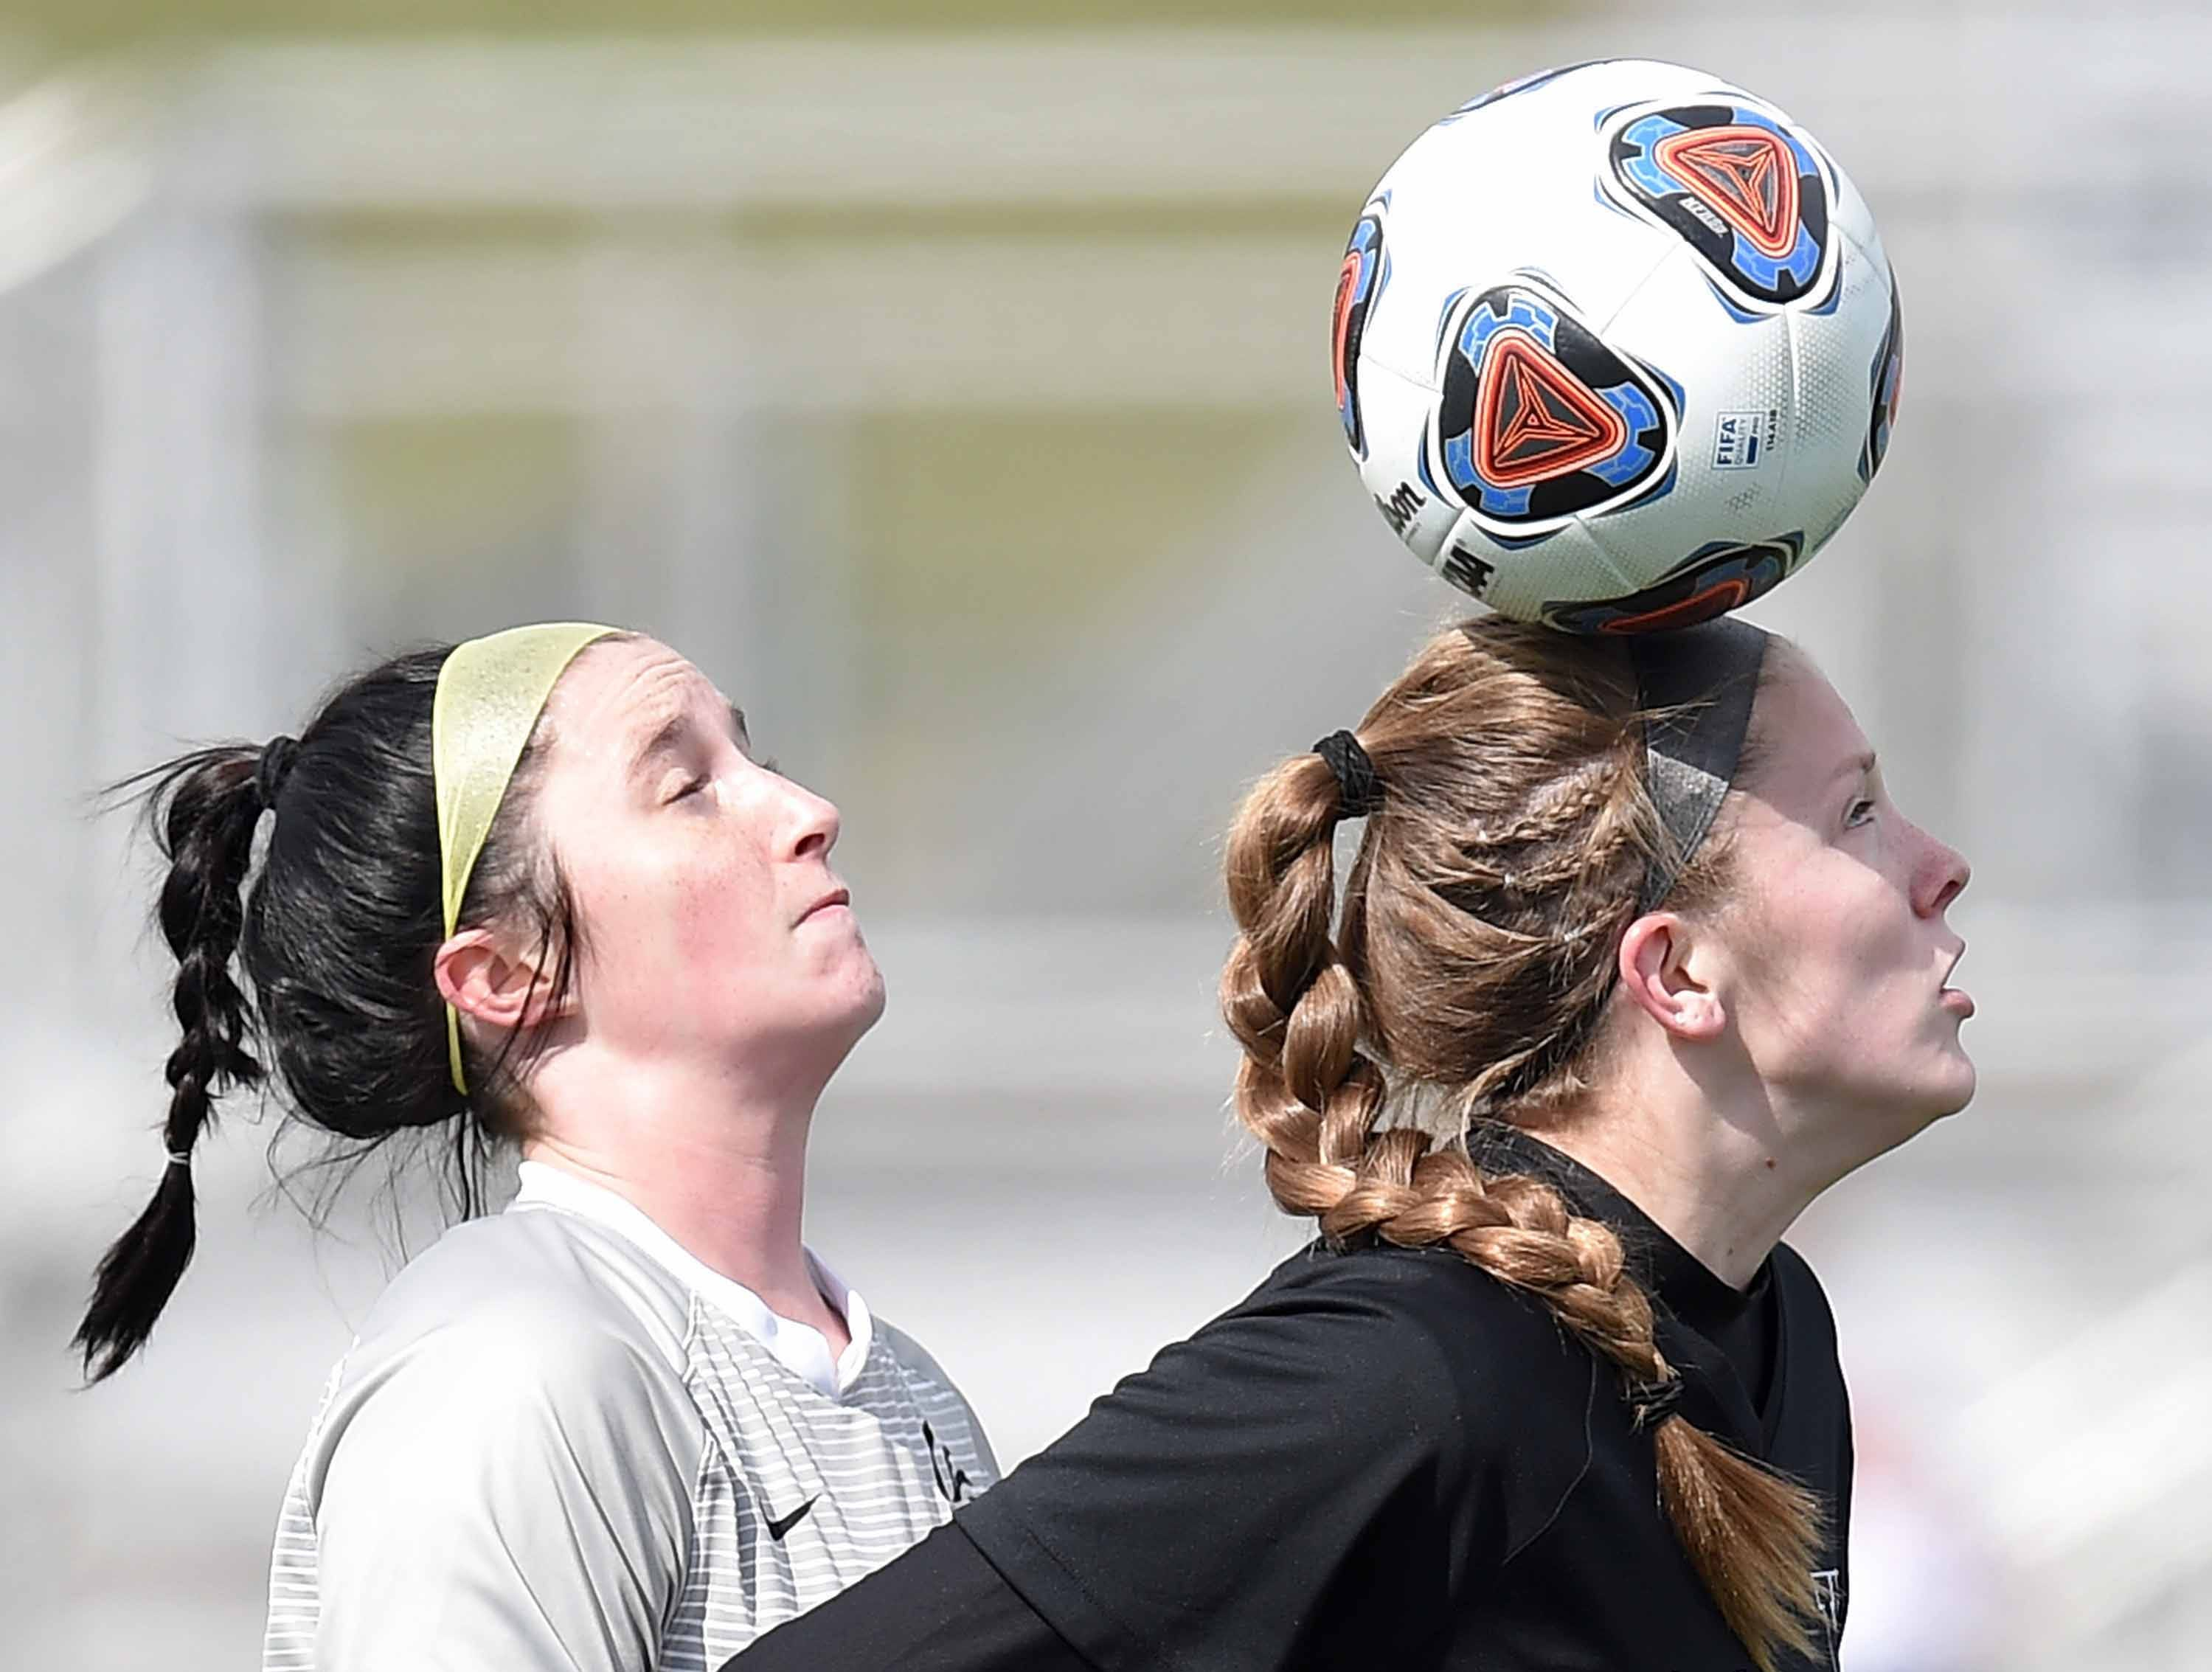 West Lauderdale's Ember Temple (right) heads the ball against Florence in the Class 4A state championship in the MHSAA BlueCross Blue Shield of Mississippi Soccer Classic on Saturday, February 9, 2019, at Ridgeland High School in Ridgeland, Miss.